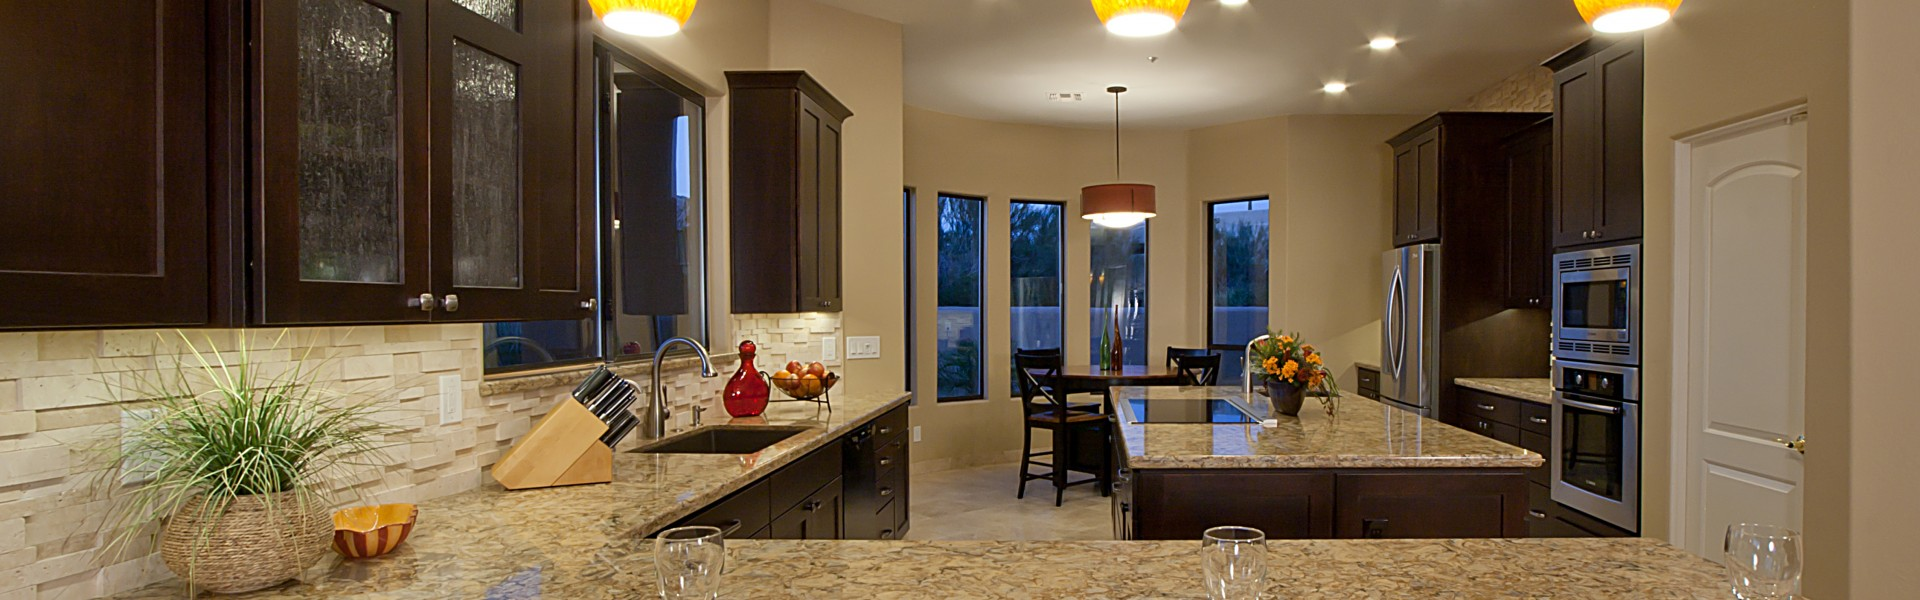 Interior Design Kitchen Remodel Bath Remodeling Custom Home Interiors Scottsdale